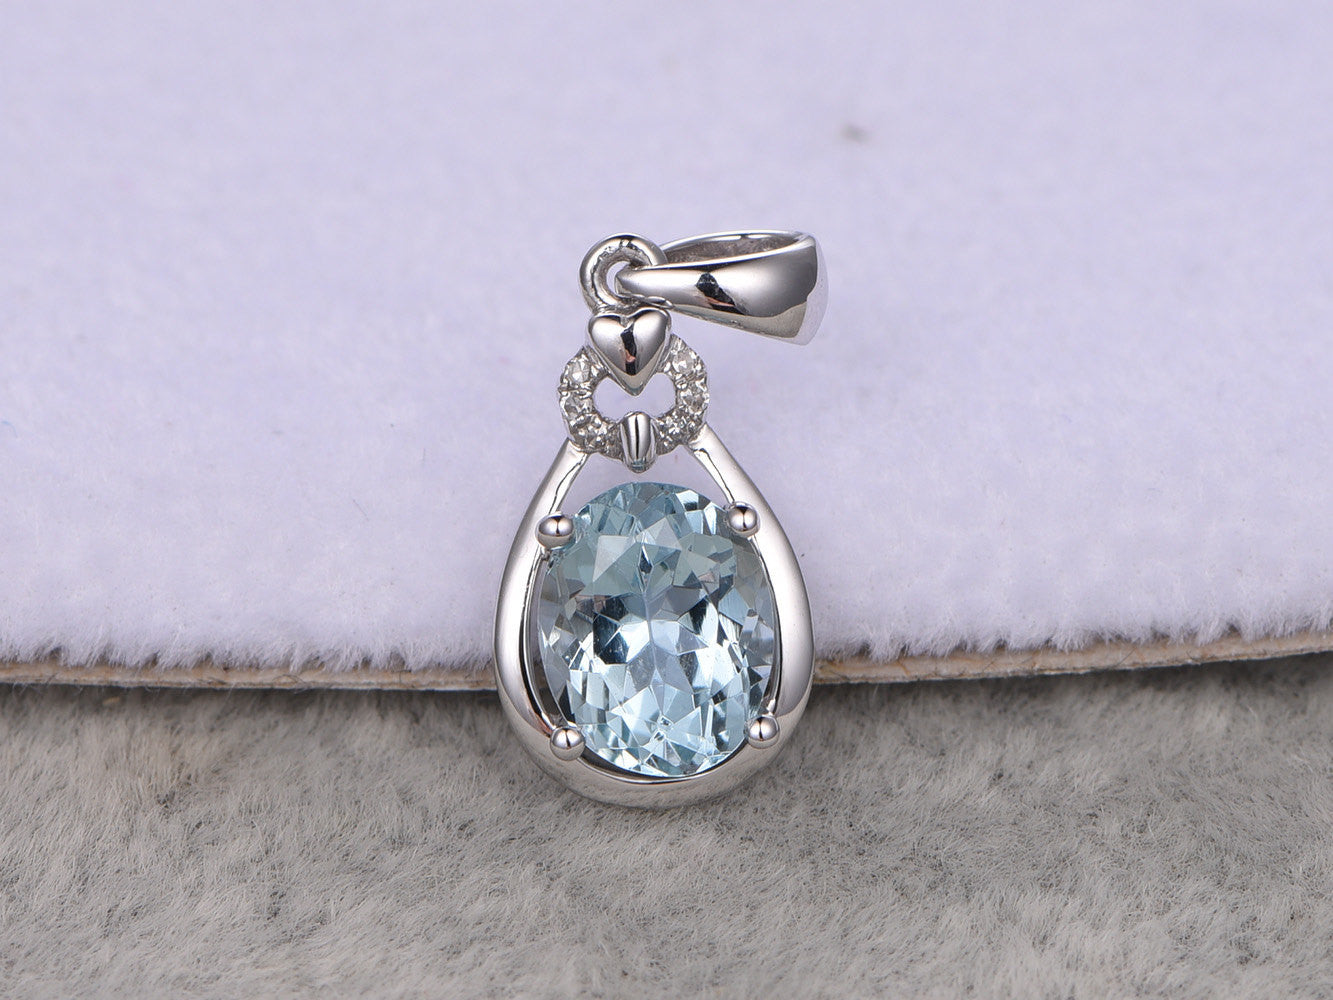 Natural Aquamarine Pendant!14k White gold,Diamond accent,1.35ctw 6X8mm Oval cut Blue Stone,Gemstone Pendant